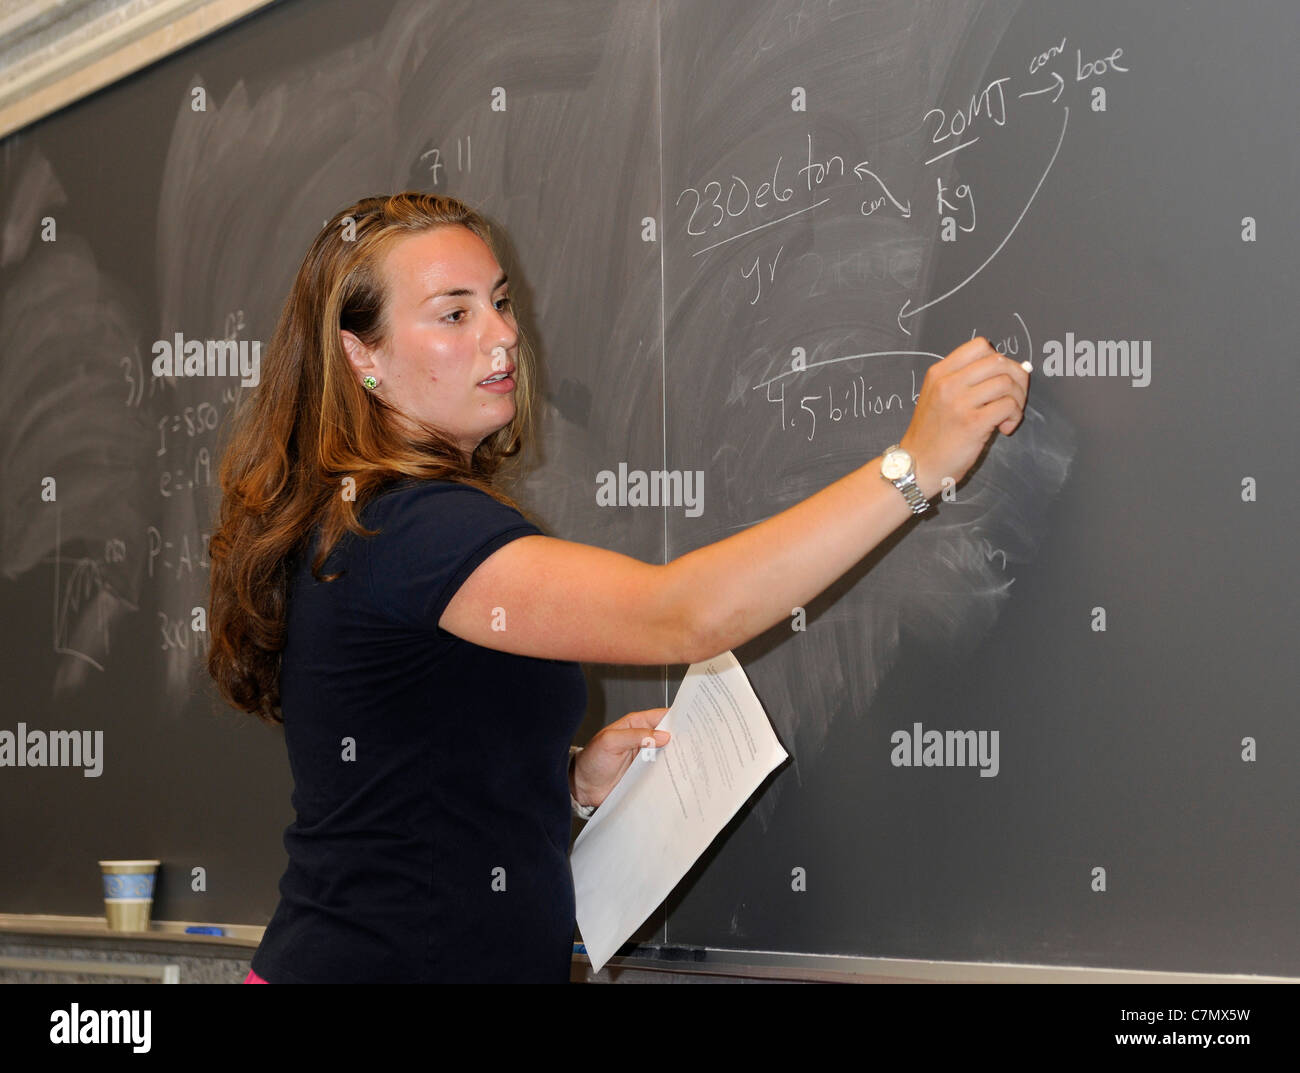 Yale University physics graduate student Alyssa Siefert teaches a Yale Summer School class. - Stock Image